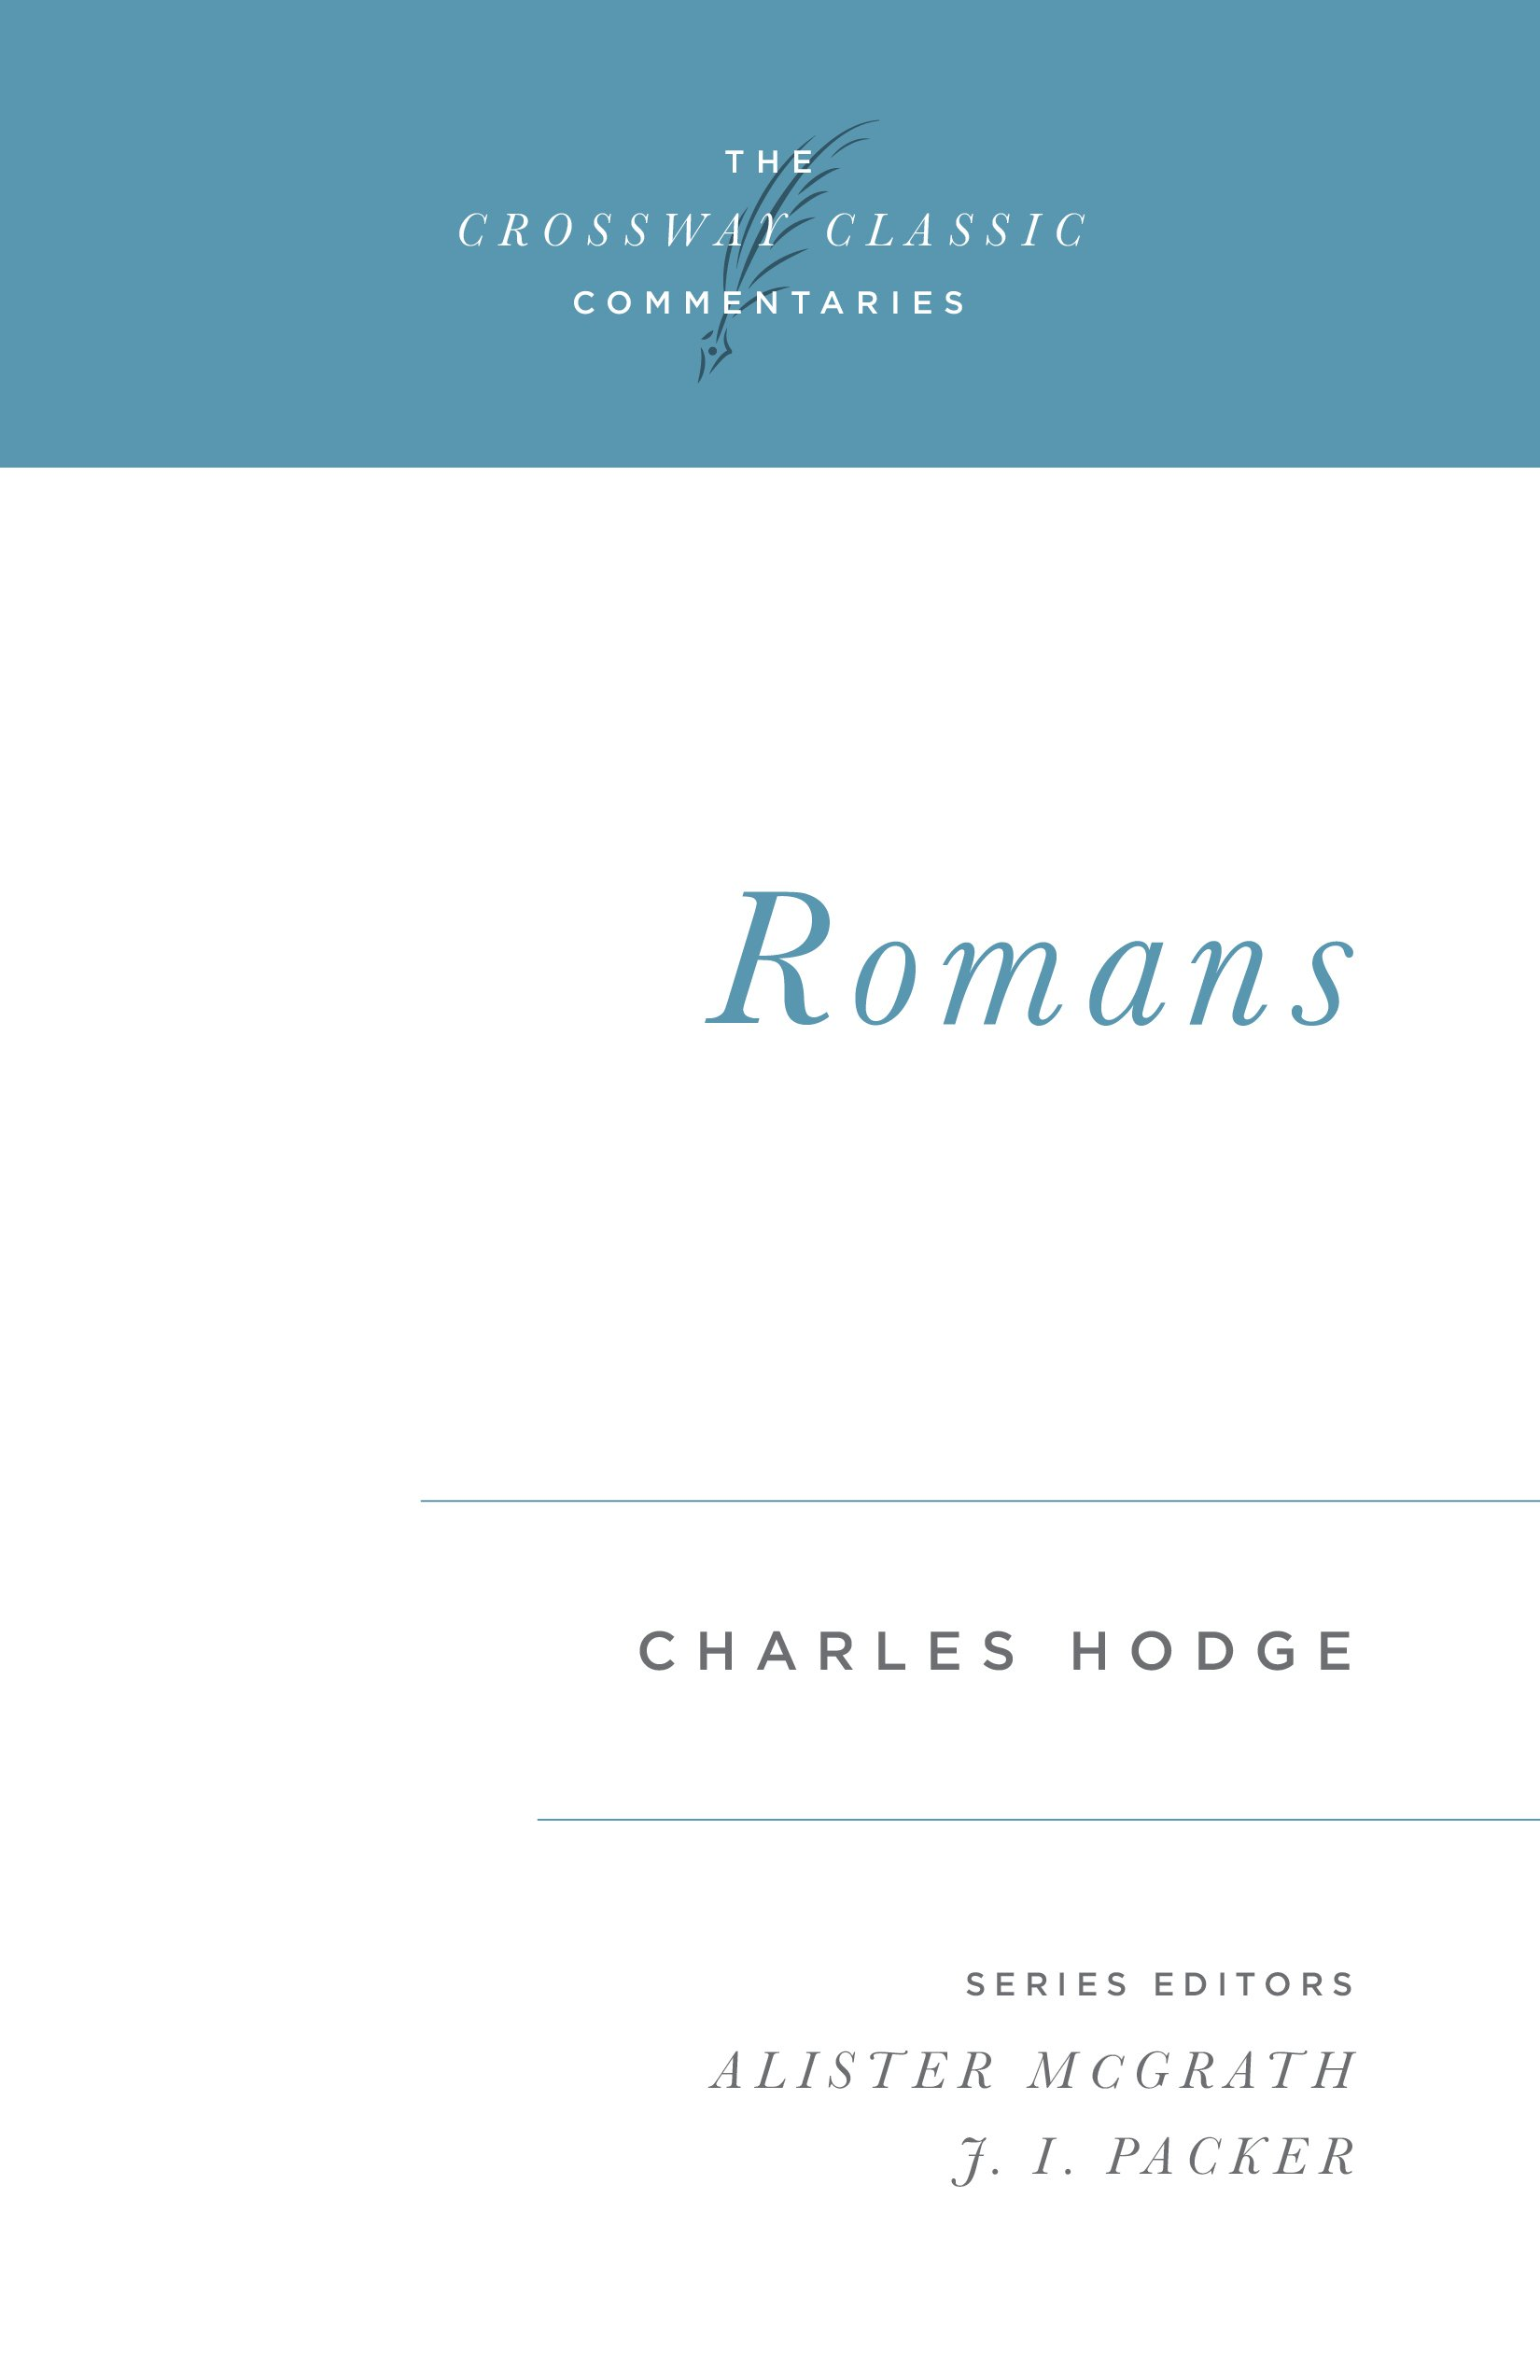 Romans (The Crossway Classic Commentaries): Charles Hodge, Alister McGrath,  J. I. Packer: 9780891077244: Amazon.com: Books